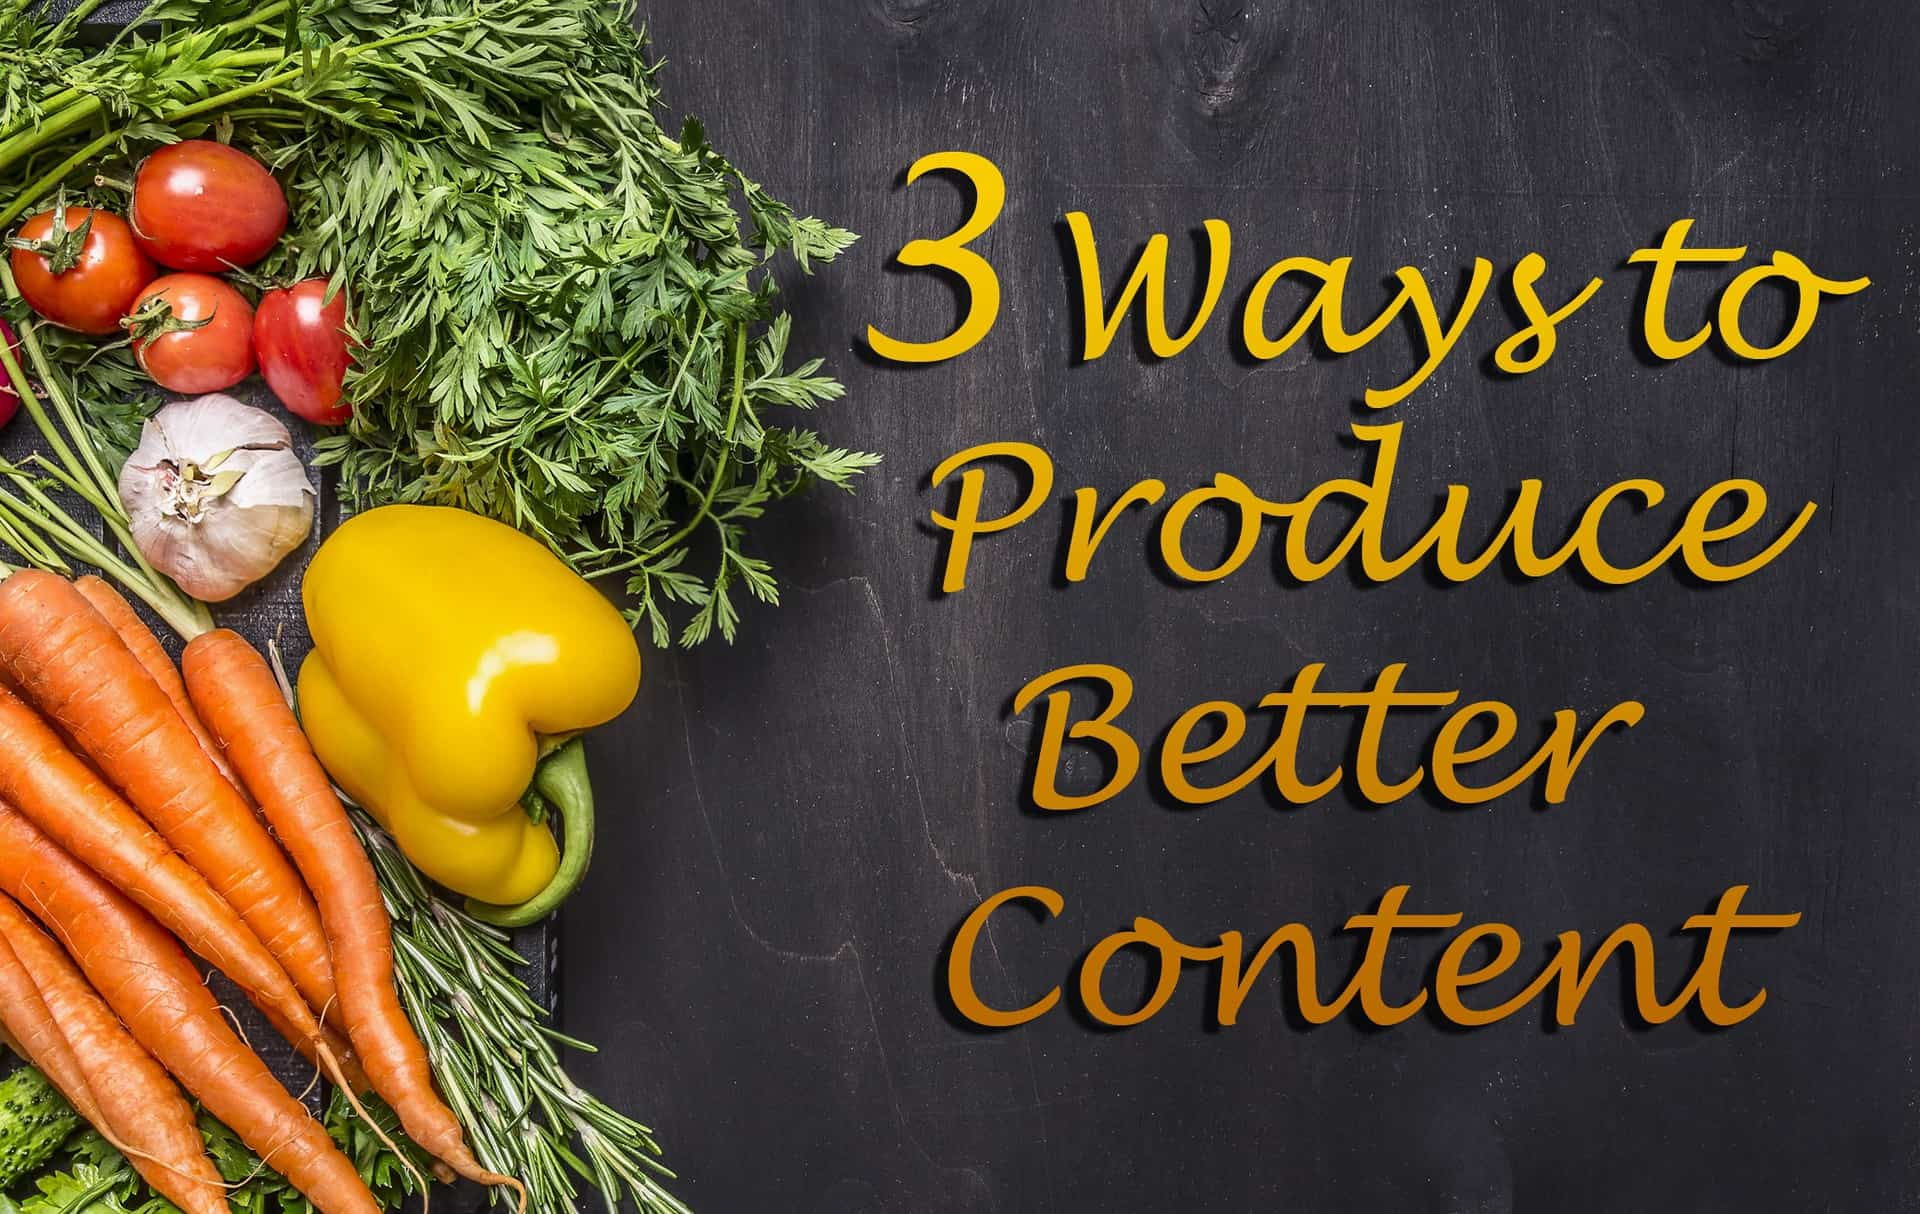 Produce Better Content